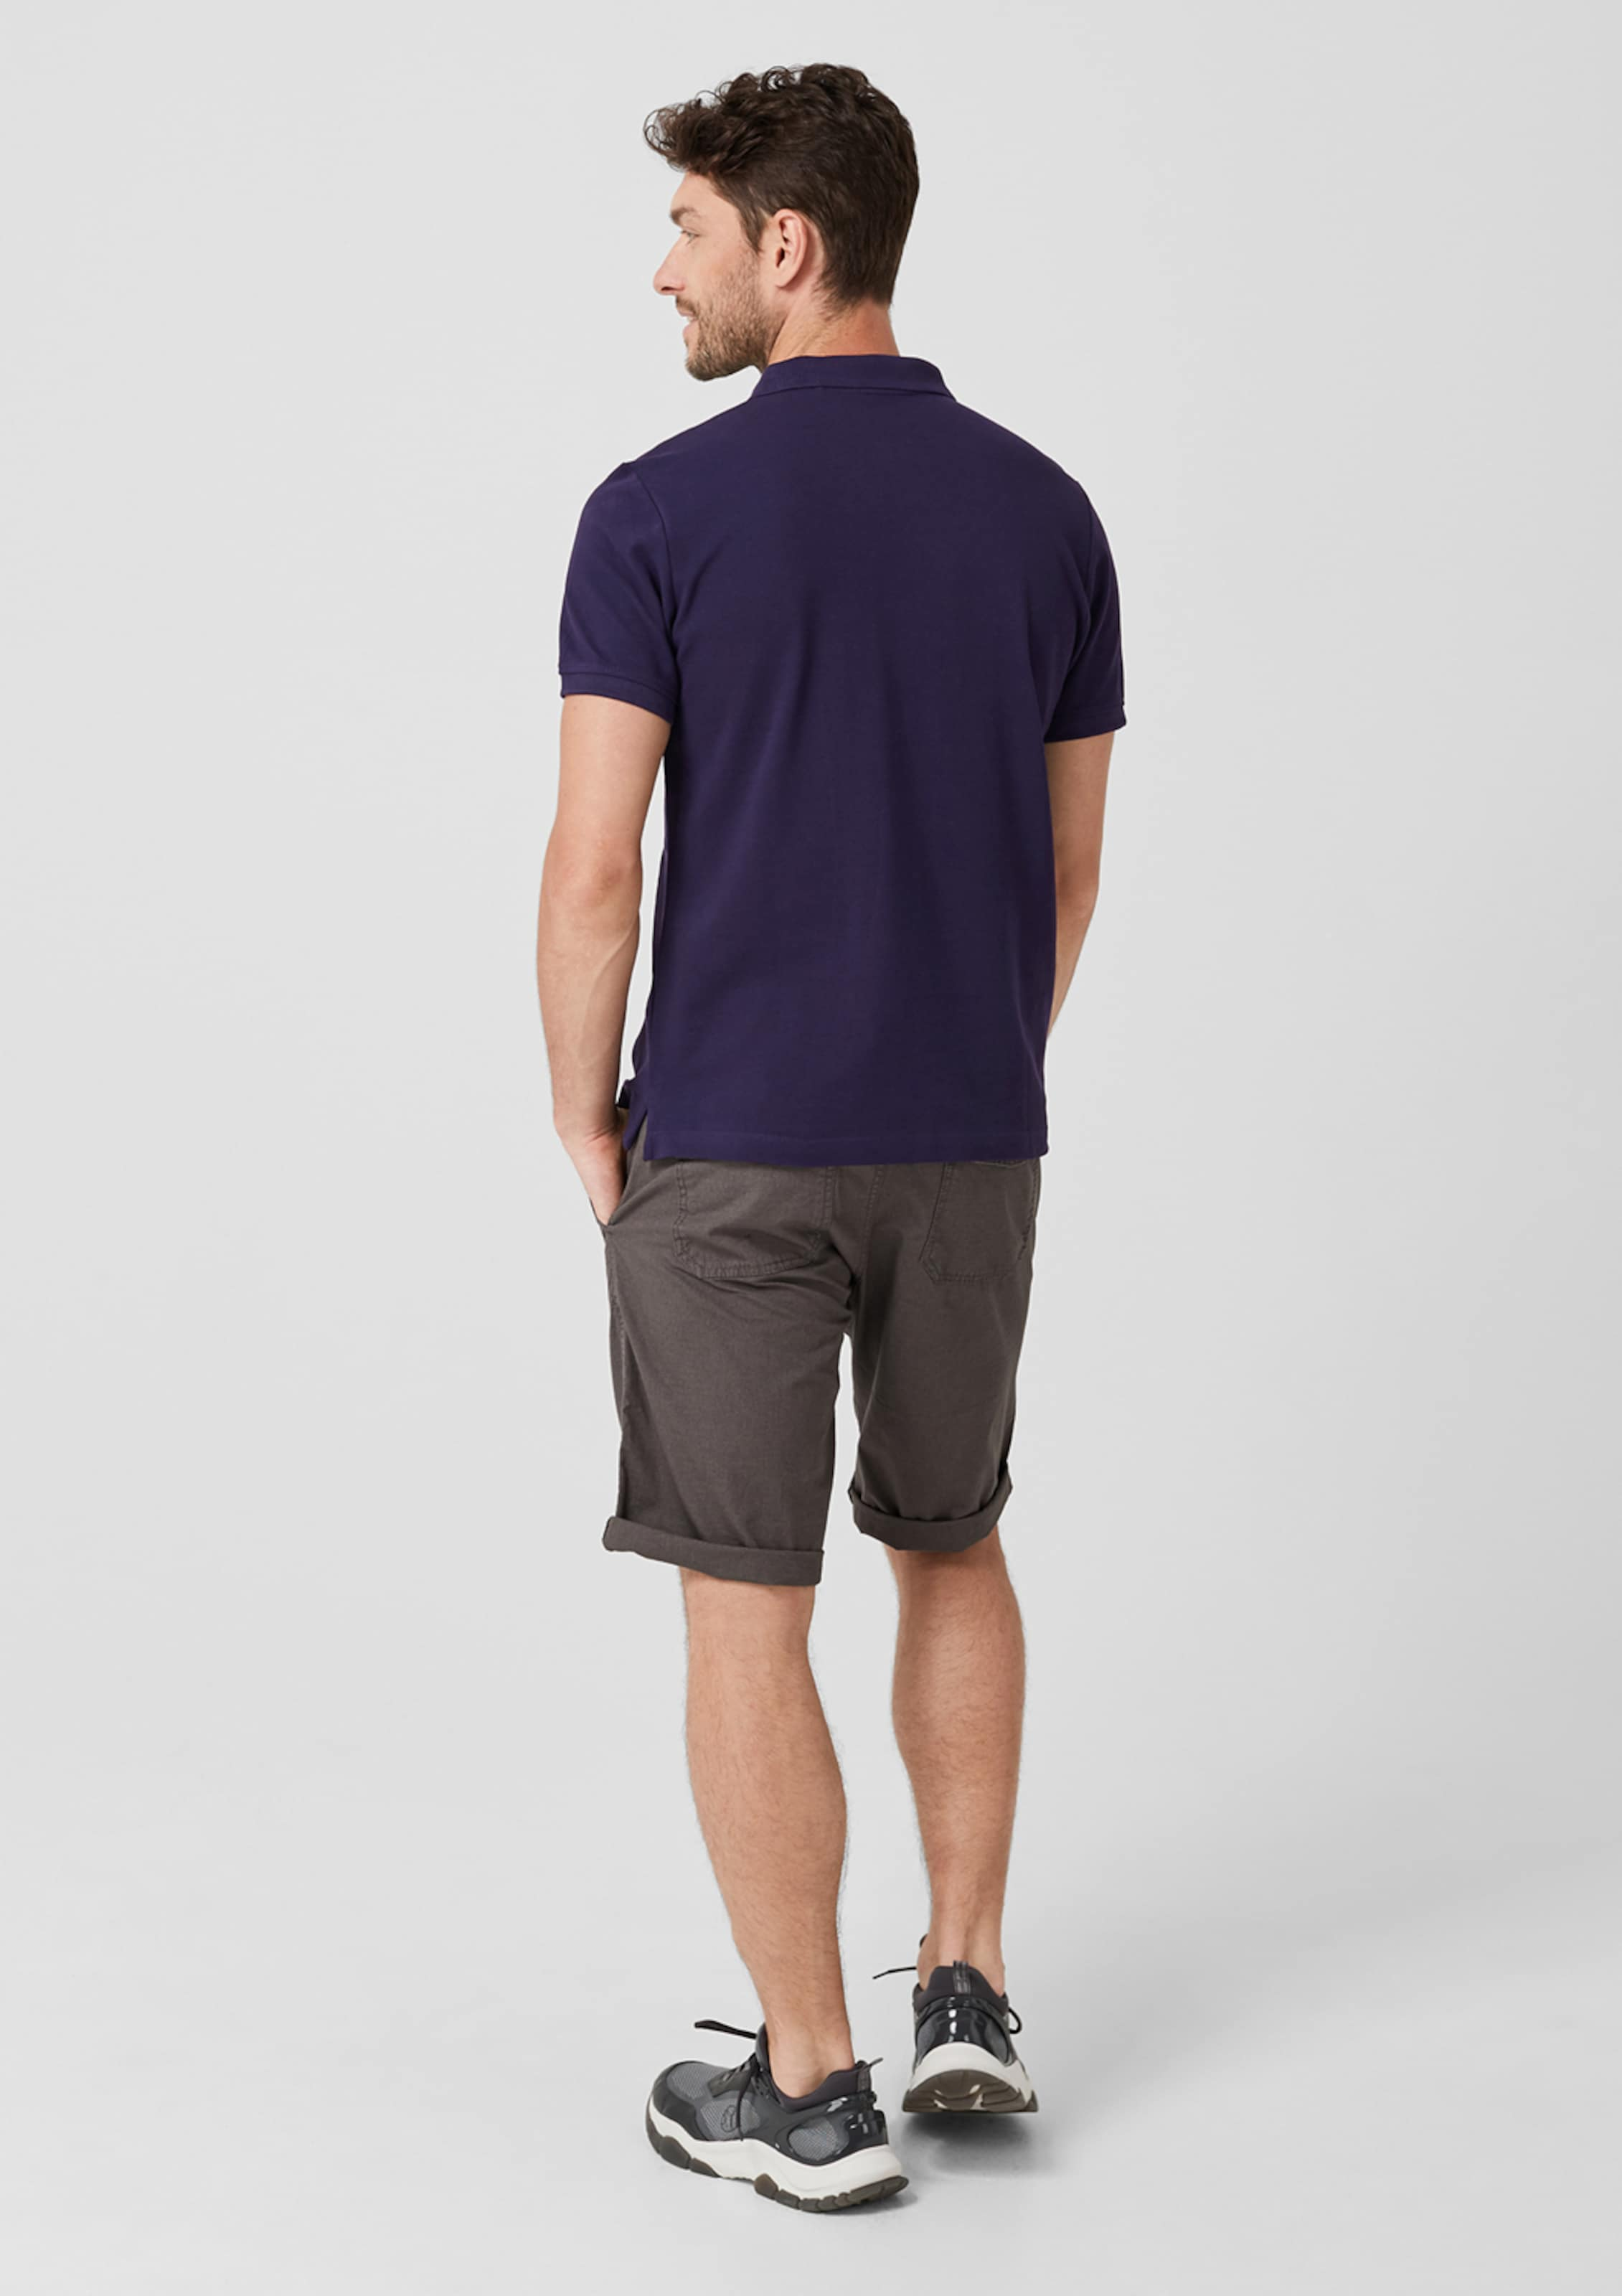 S In Pflaume S oliver Pflaume Poloshirt S oliver In Poloshirt DH29YeWEI